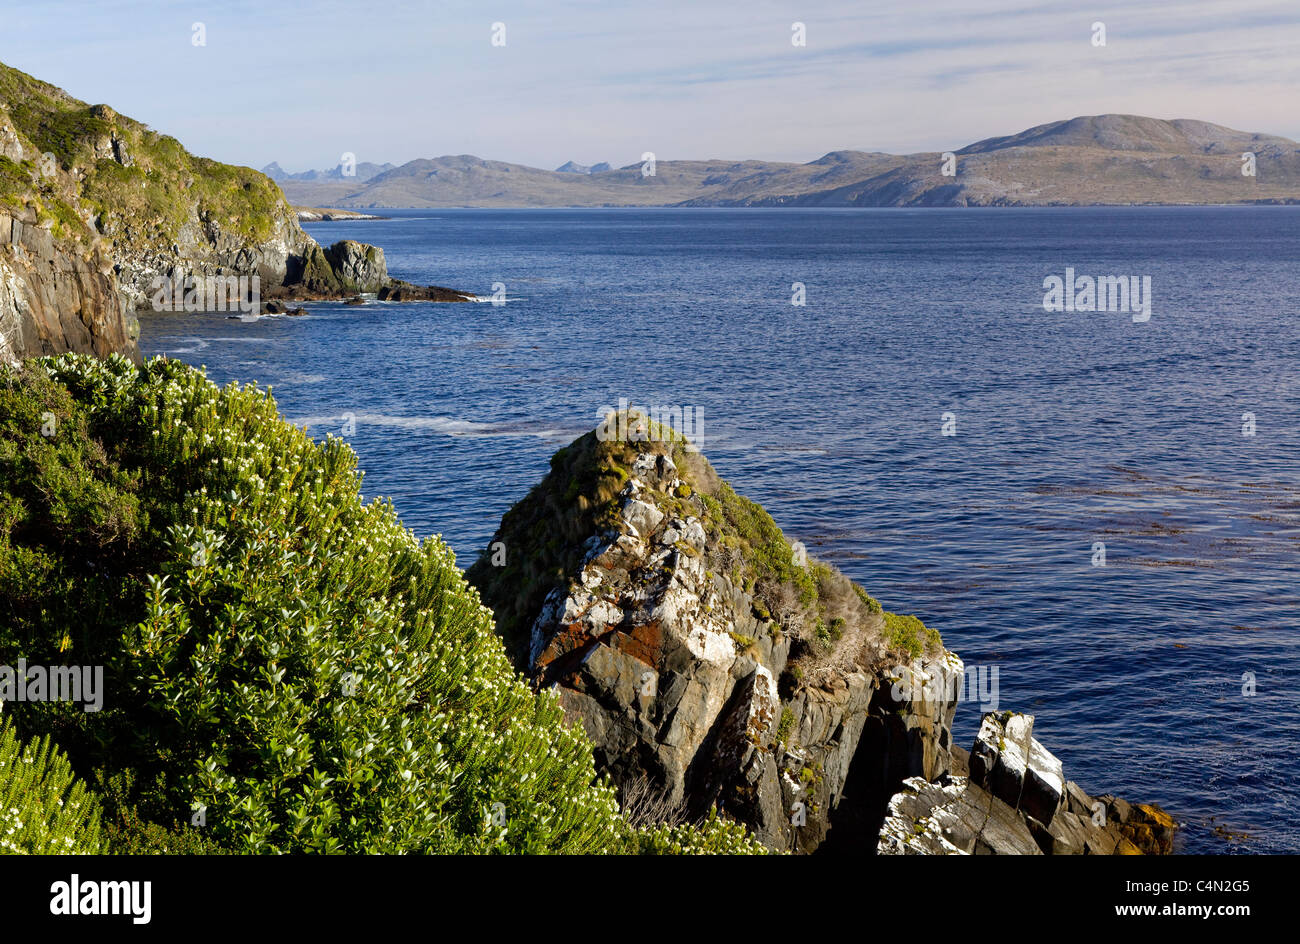 Cape Horn, the southern most point of South America, in Chile. - Stock Image